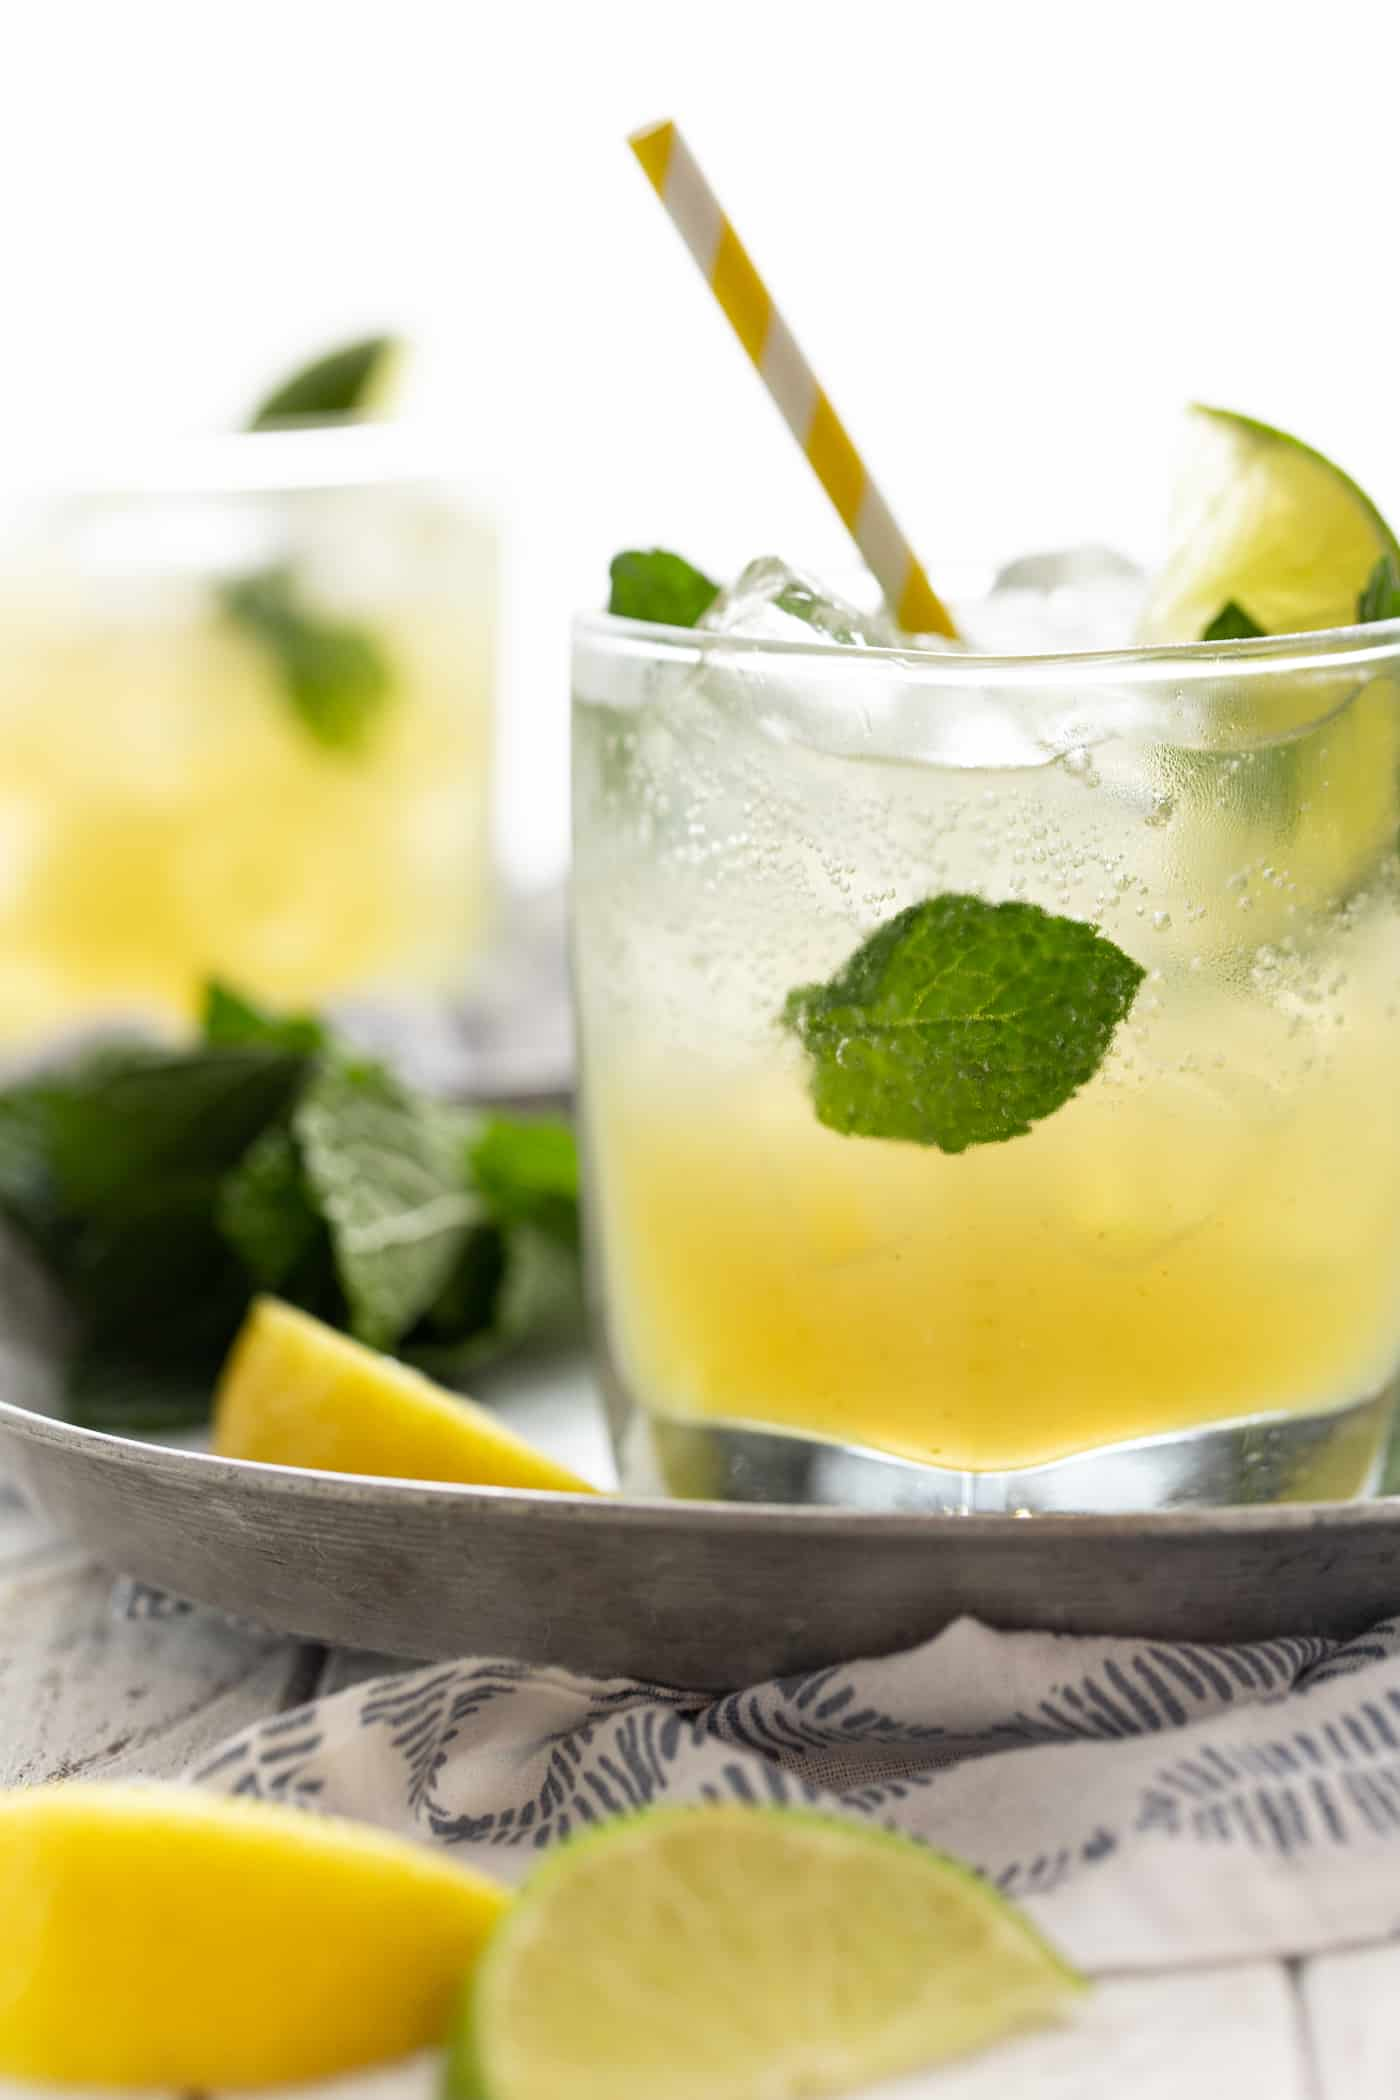 Cocktails in low ball glasses with fresh mint leaves and lemon wedges for garnish.